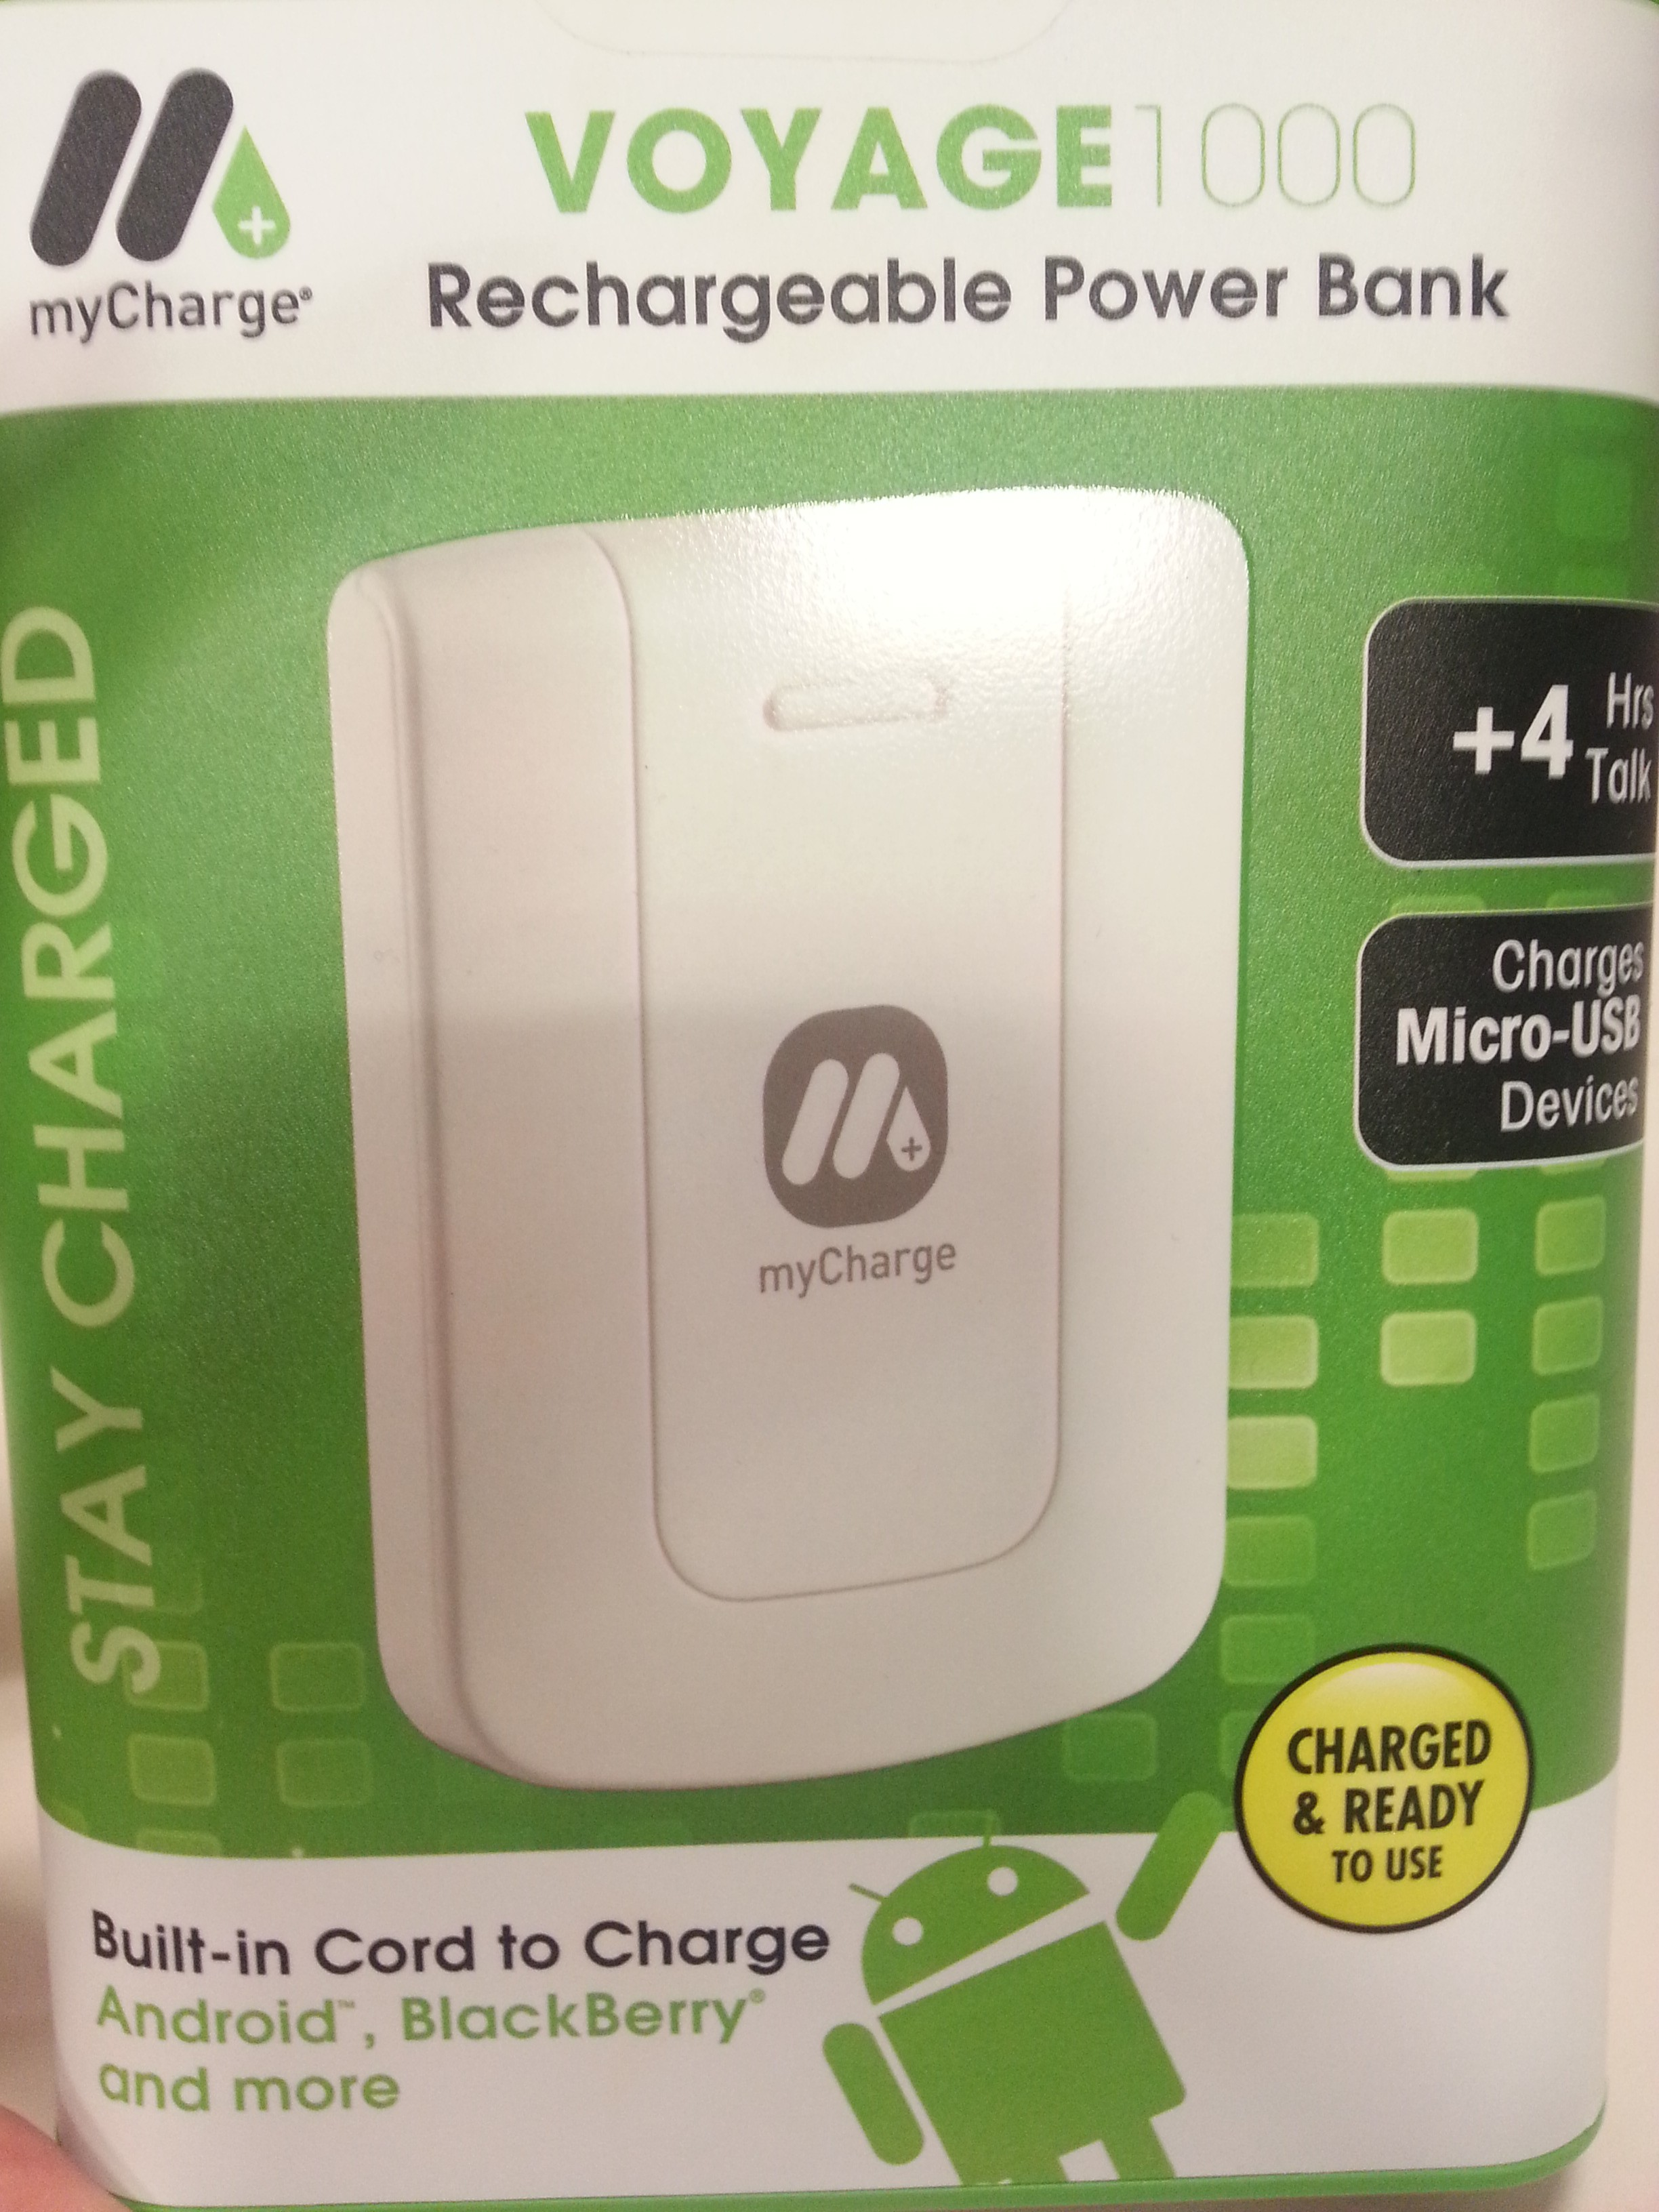 mycharge Voyage 1000 Front Package